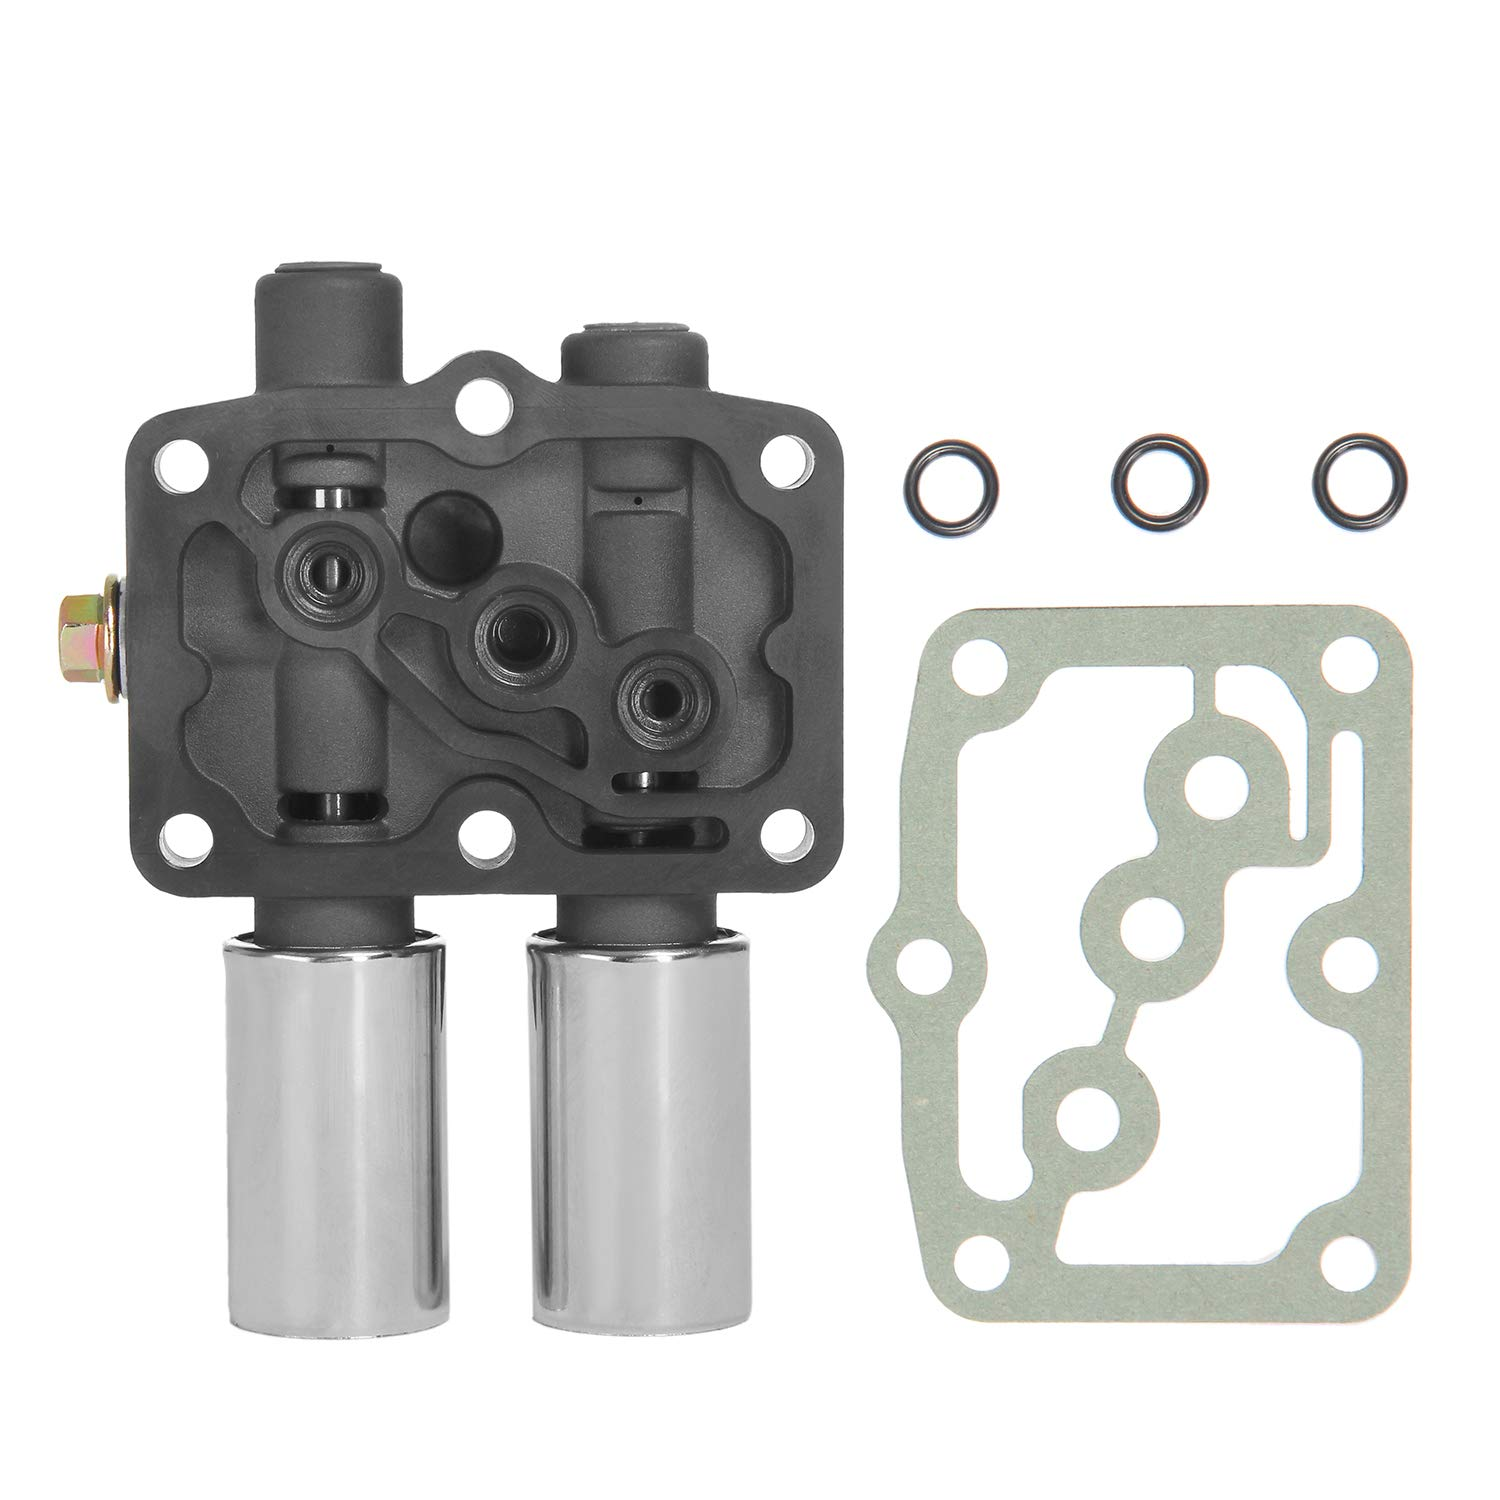 Transmission Dual Linear Solenoid with 1PCS Gasket and 3PCS O-Rings   for Honda Accord Odyssey Pilot Prelude, Acura CL TL MDX   Replaces# 28250-P6H-024, 28250P6H024